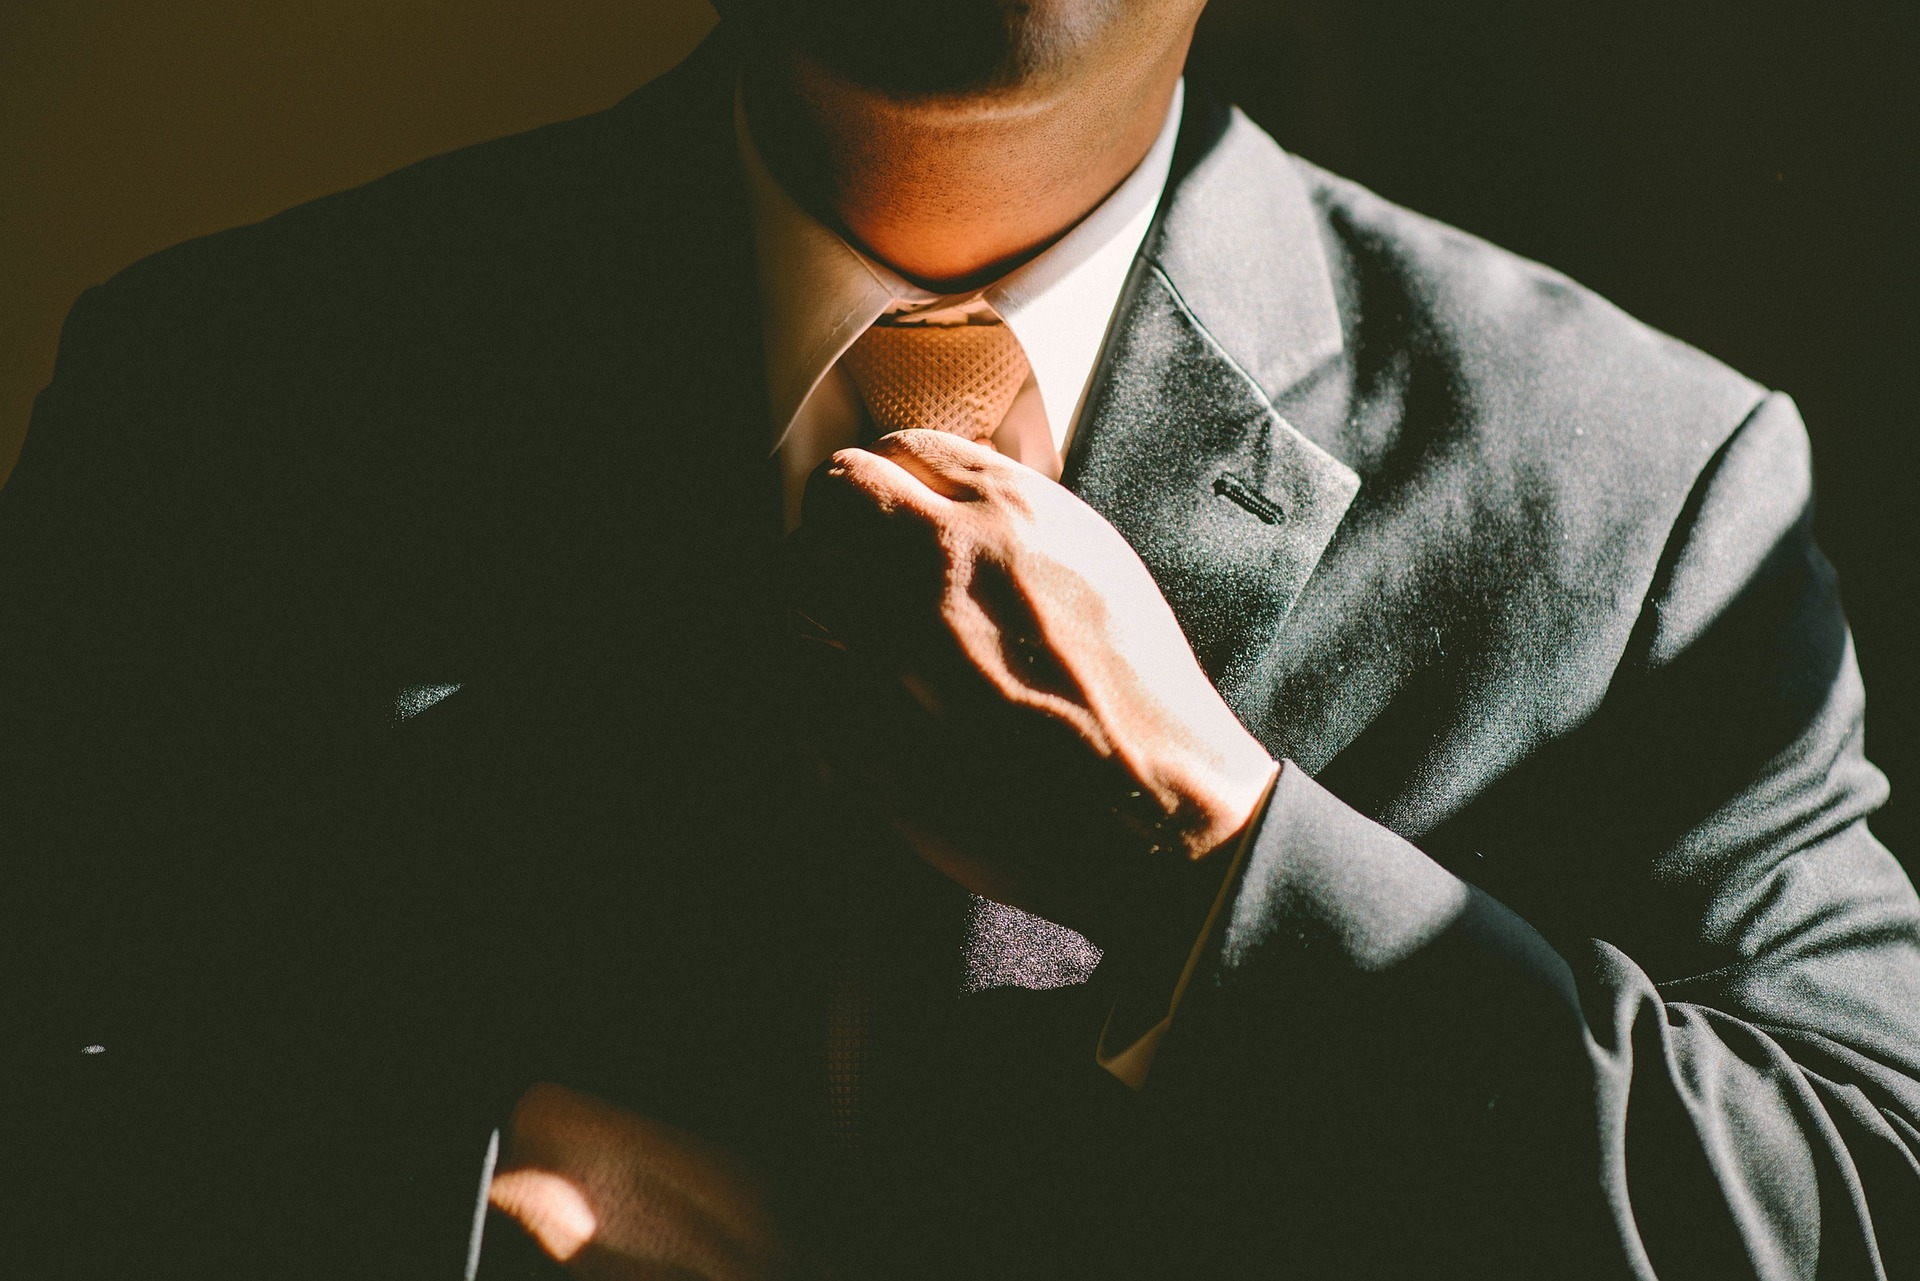 Why does an attorney's reputation matter?